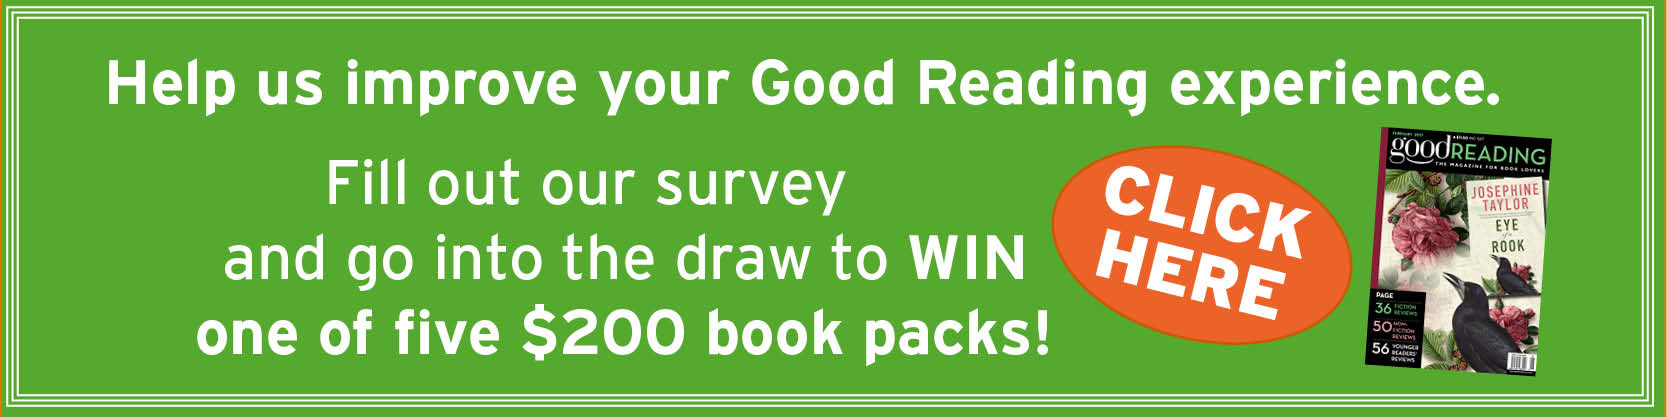 Good Reading Survey Online Mag